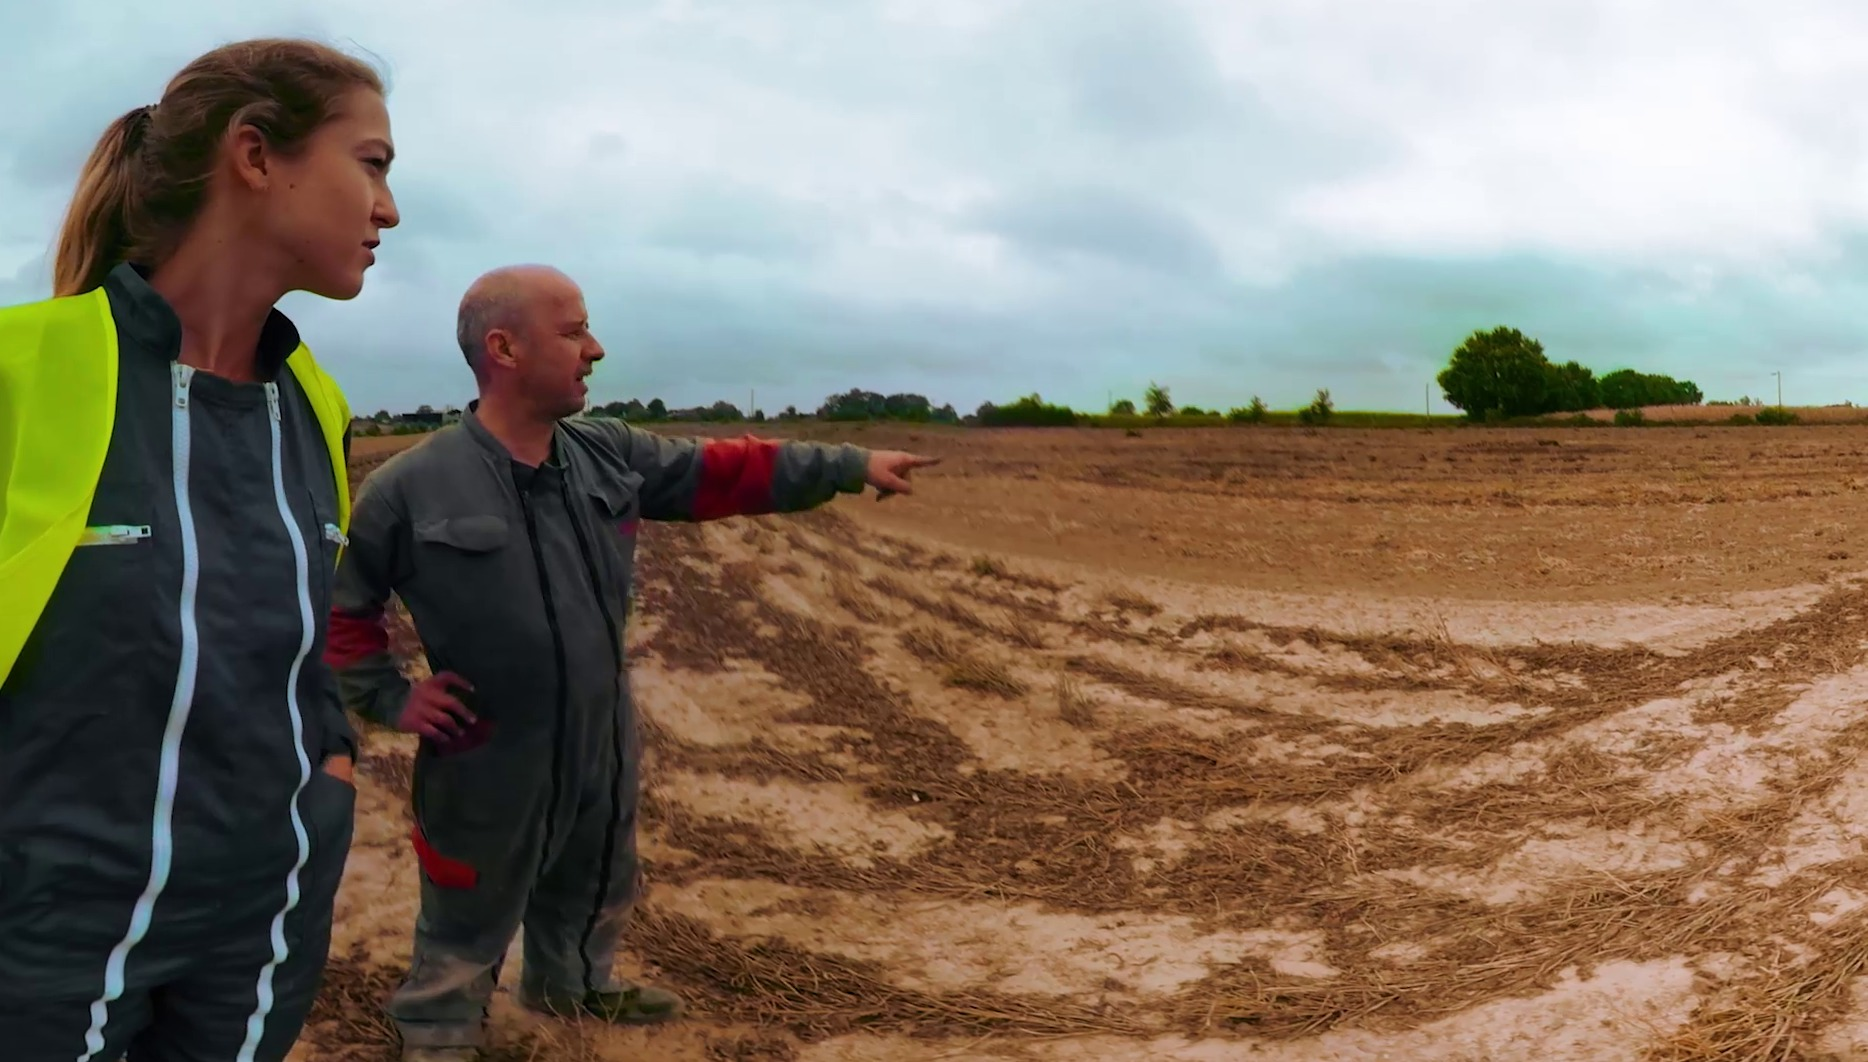 Docu-fiction 360°: apprentie conductrice de travaux en entreprise de travaux agricoles thumbnail